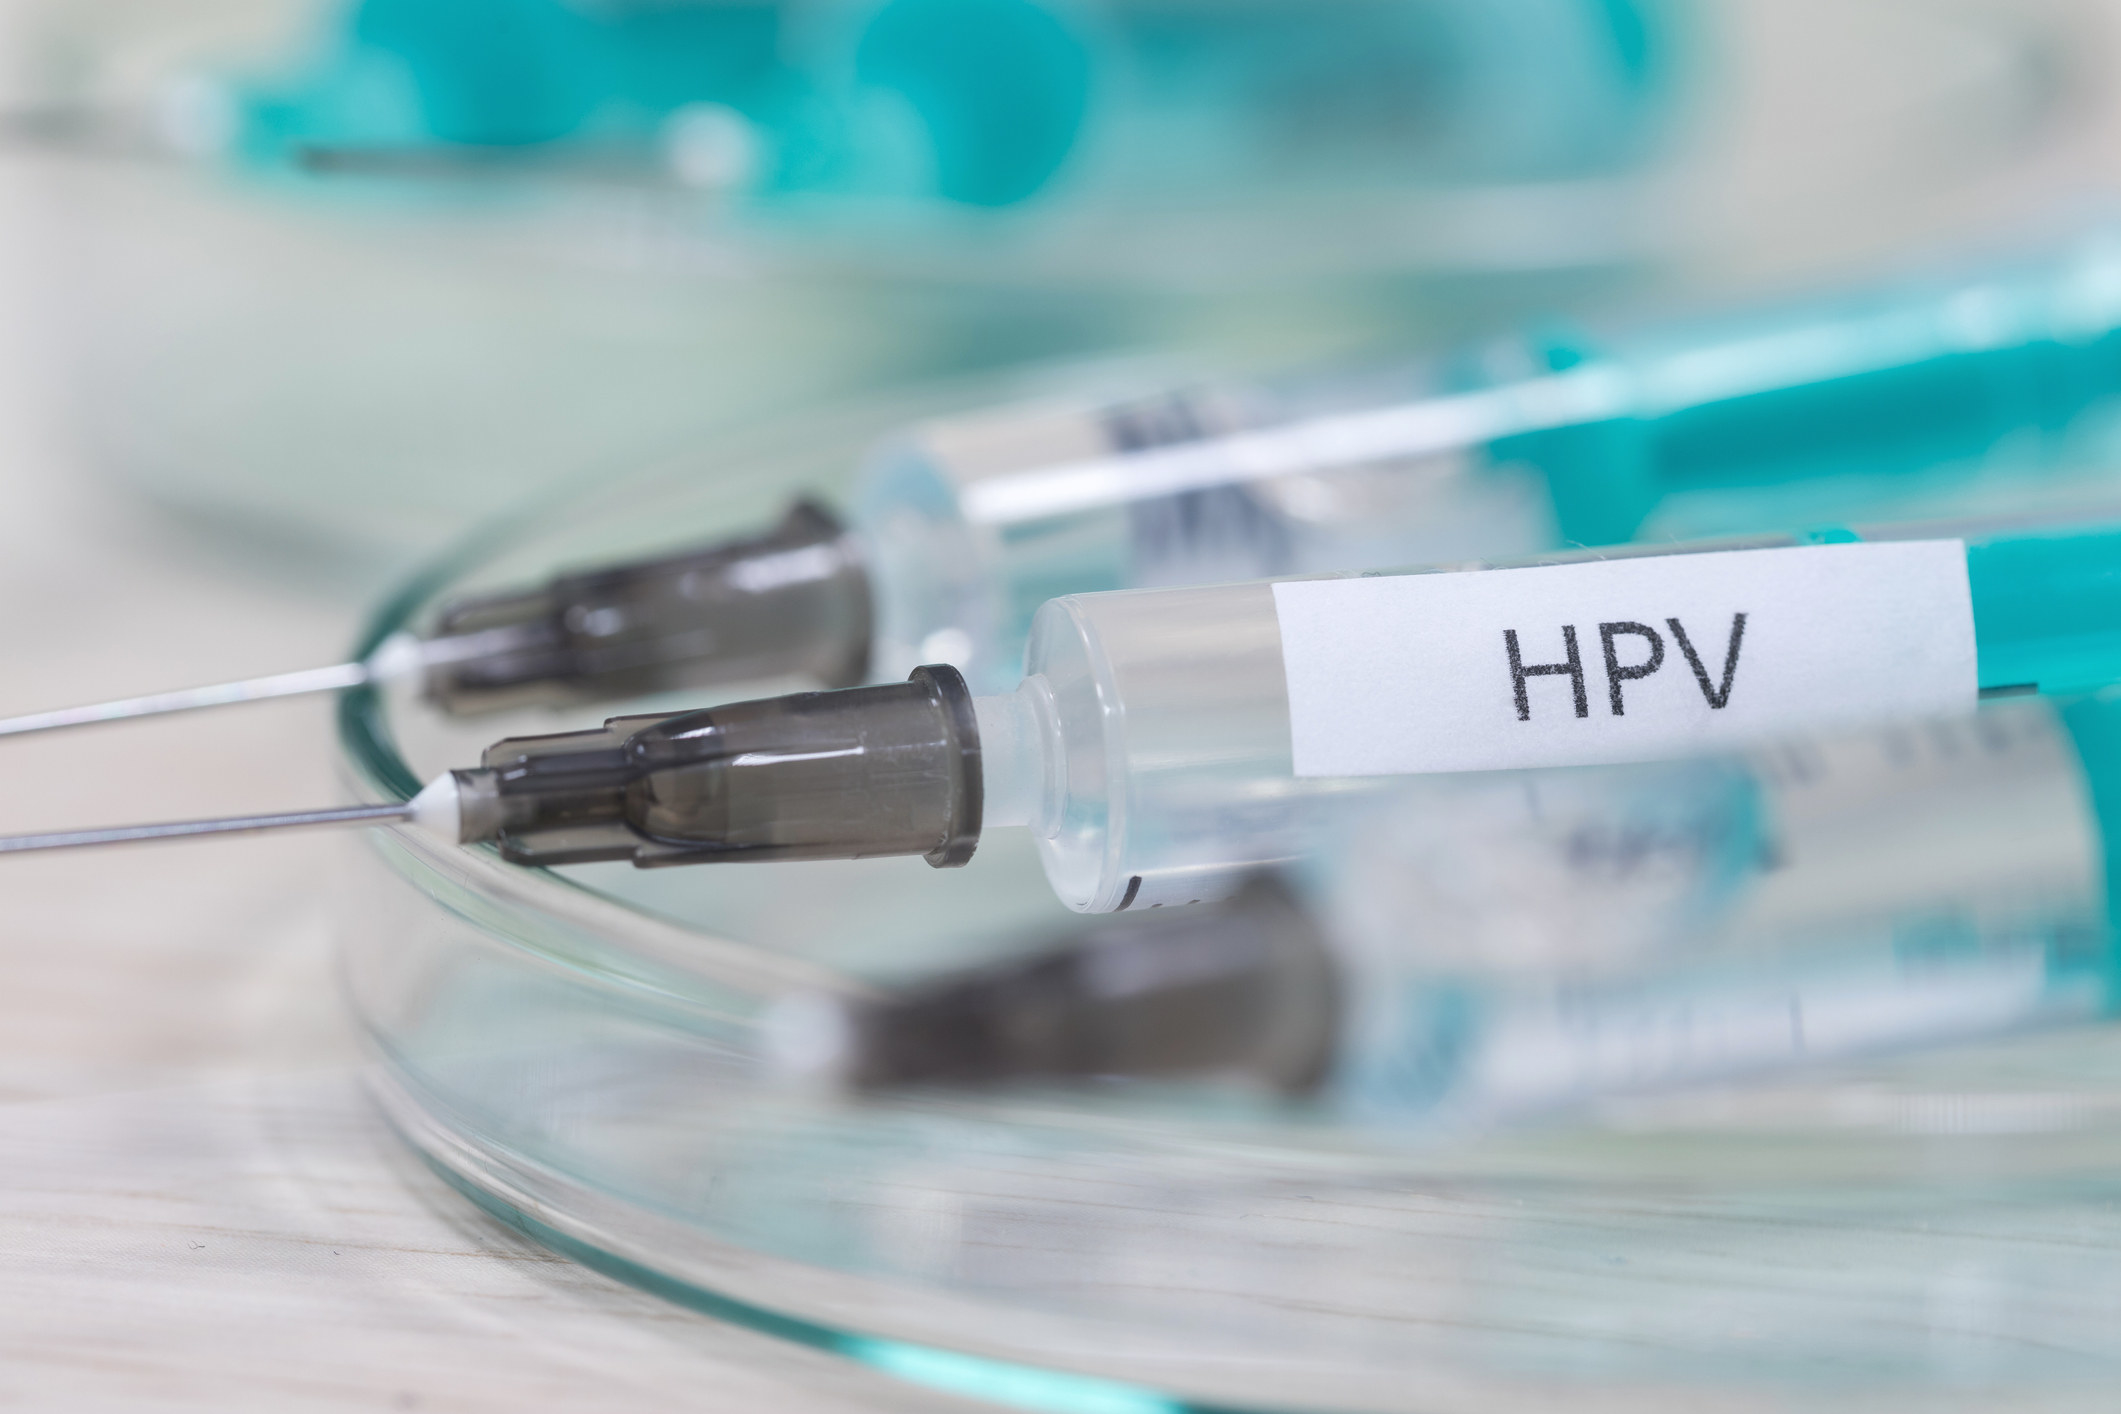 An image of the HPV vaccine